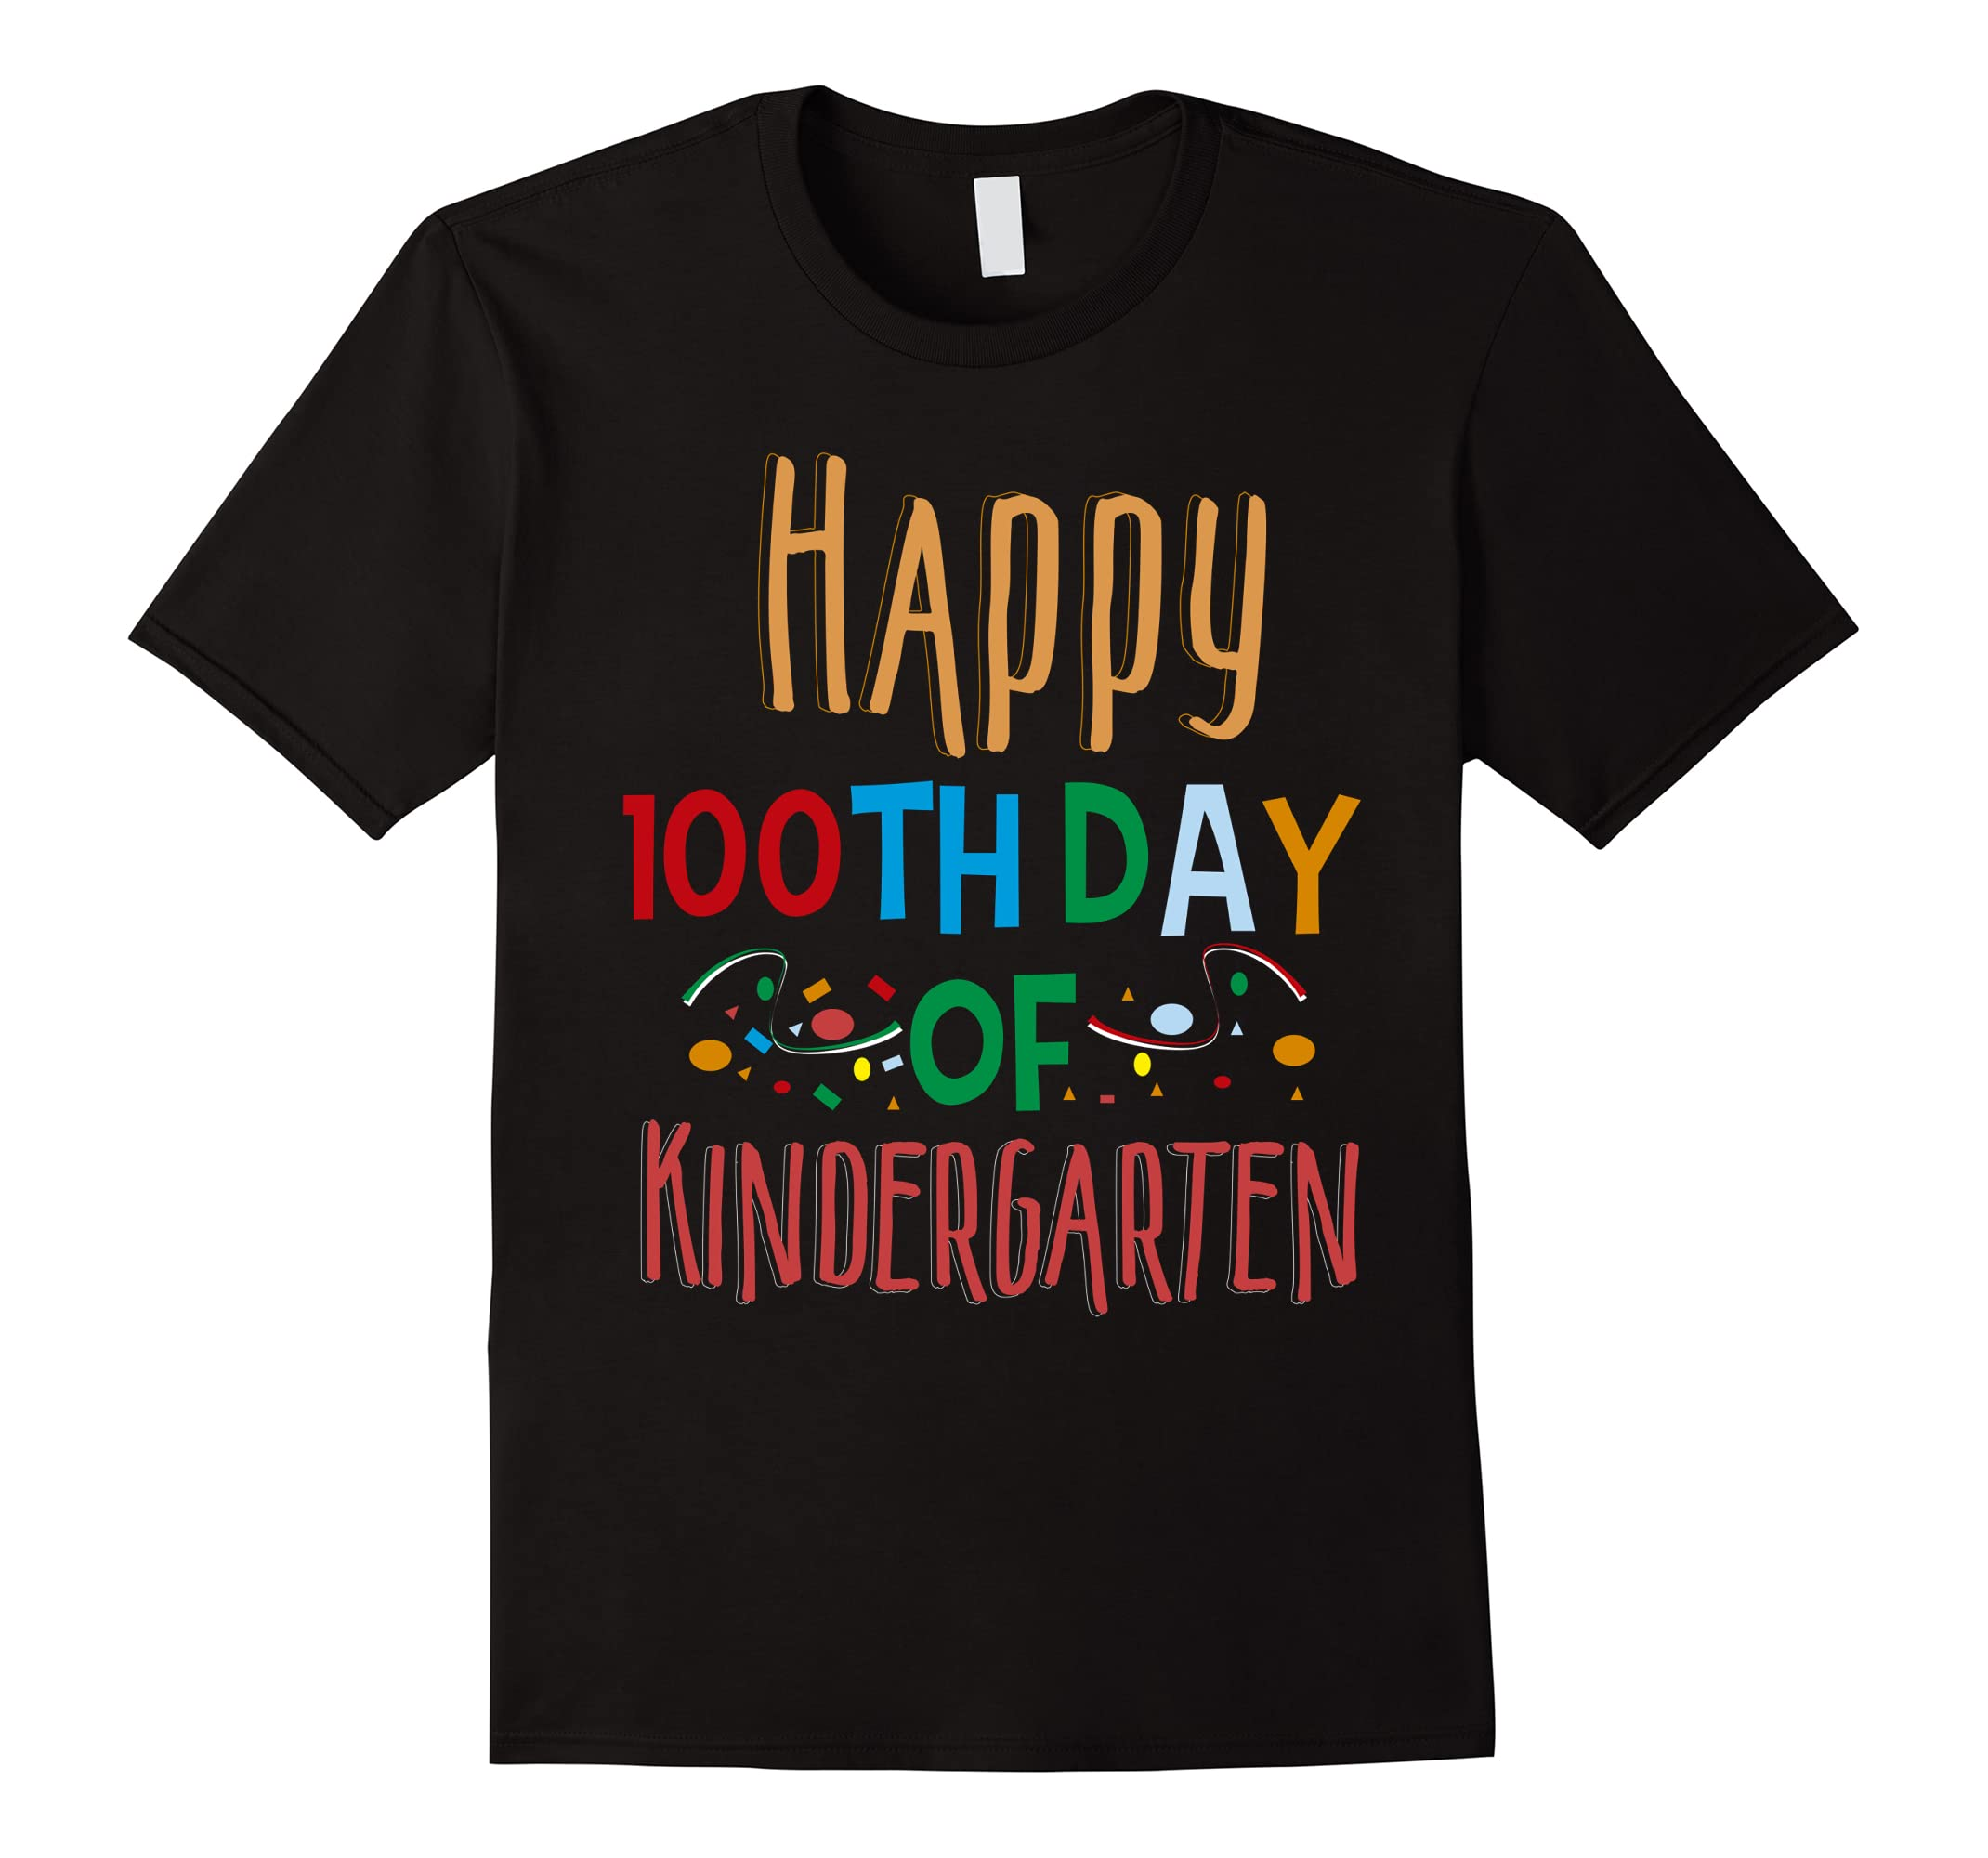 Adorable Happy 100th Day of Kindergarten Shirt for Teacher-RT